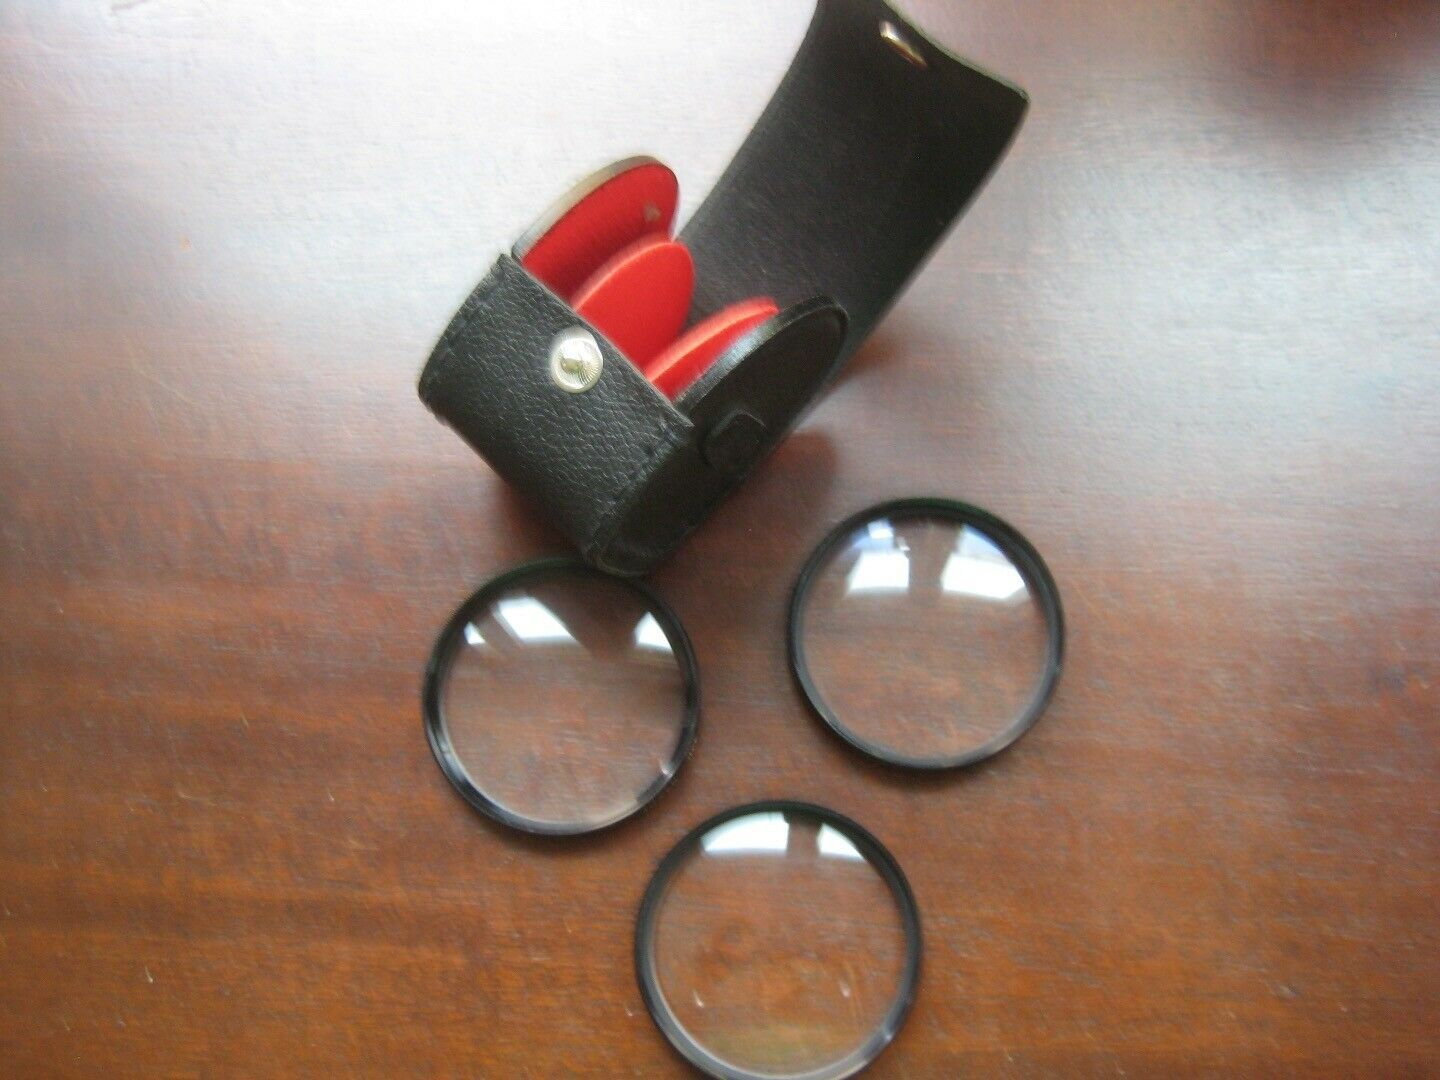 3 Tiffen HCE 52mm 1, 2, & 3, zoom filters made in Japan three slot case included - $19.59